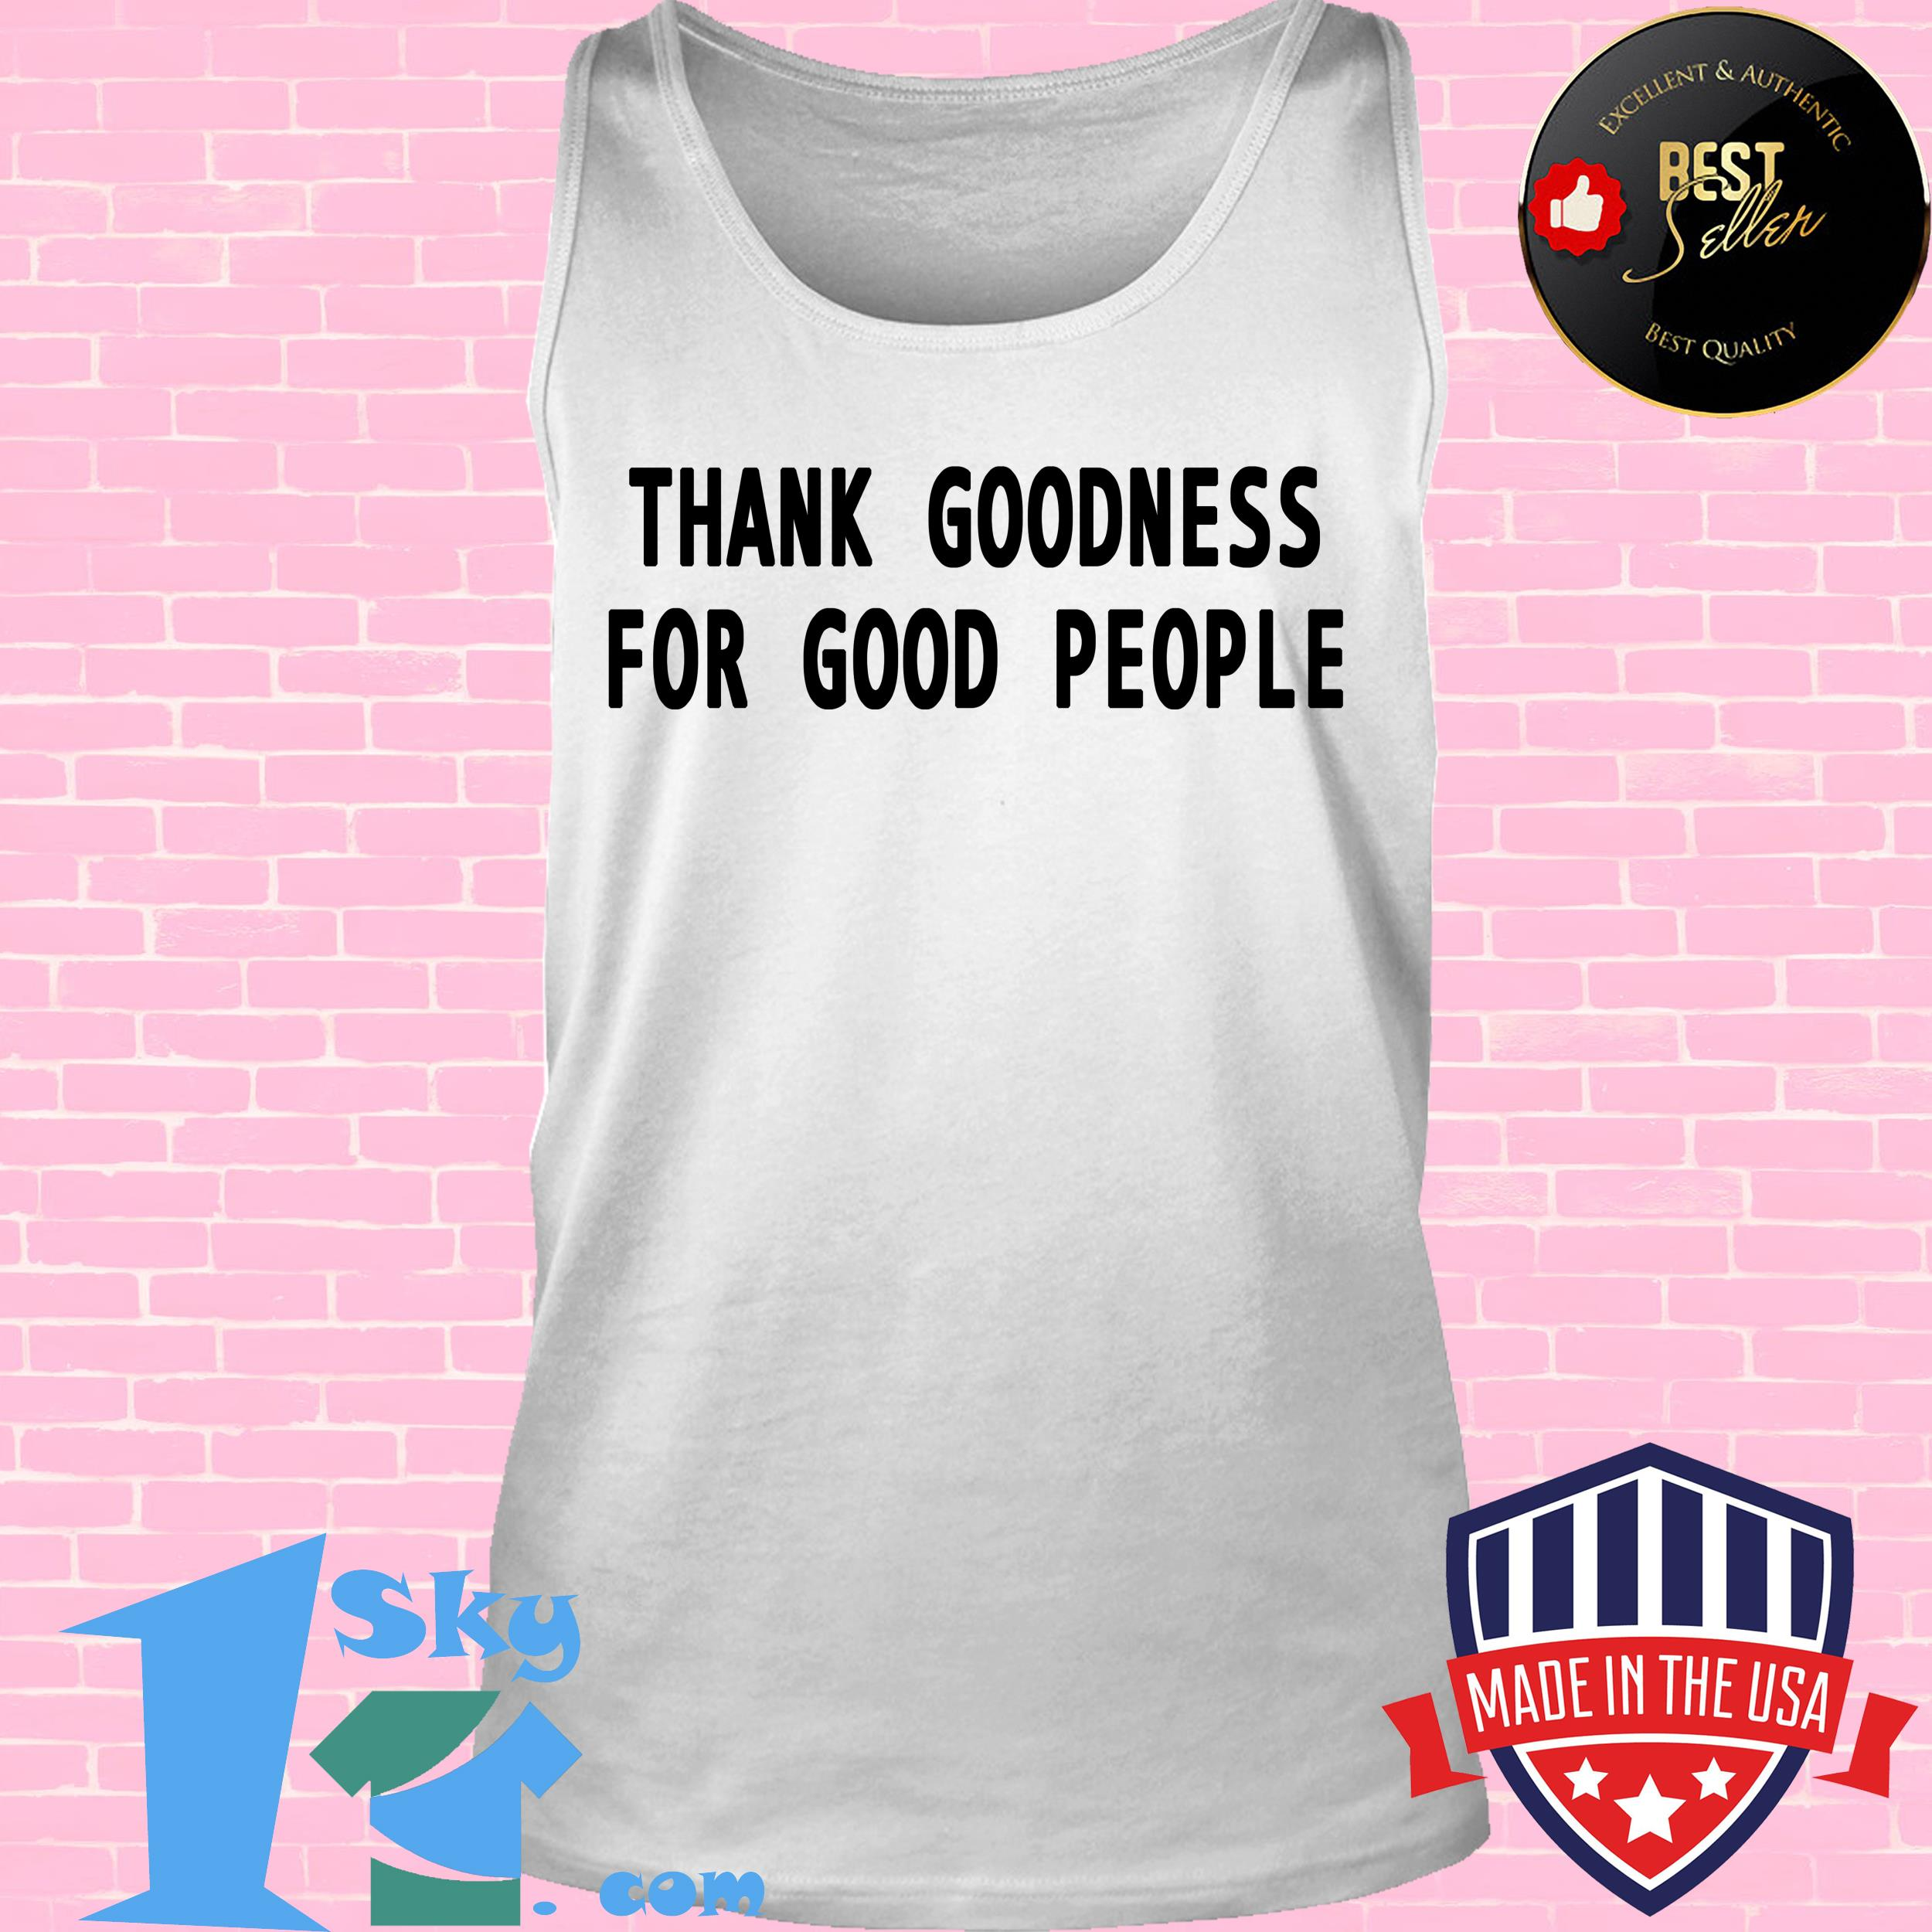 tank goodness for good people tank top - Thank Goodness For Good People shirt